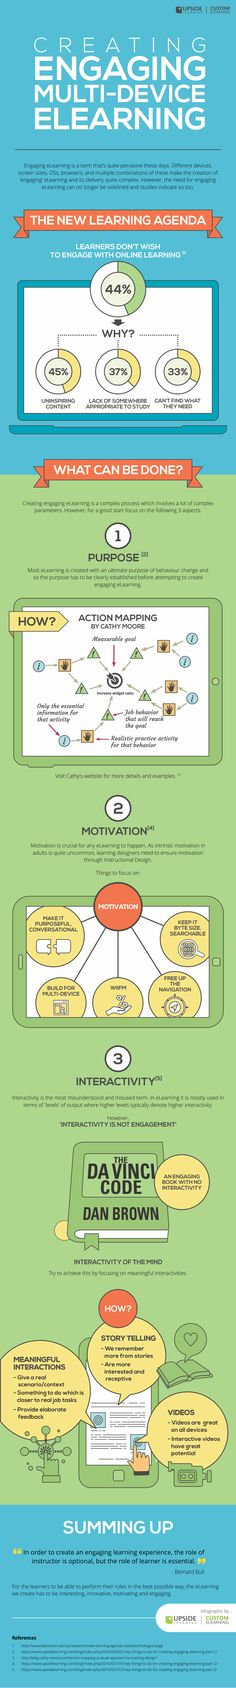 The Creating Engaging Multi-device eLearning Infographic shares 3 key elements that can assist in making eLearning truly engaging.